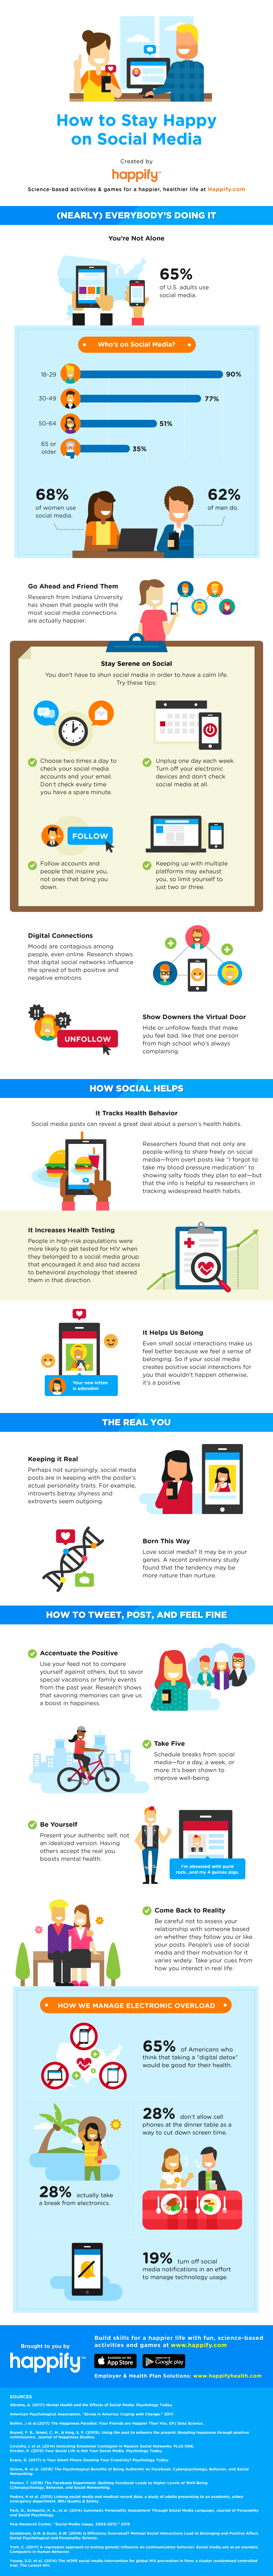 How To Stay Happy On Social Media #Infographic